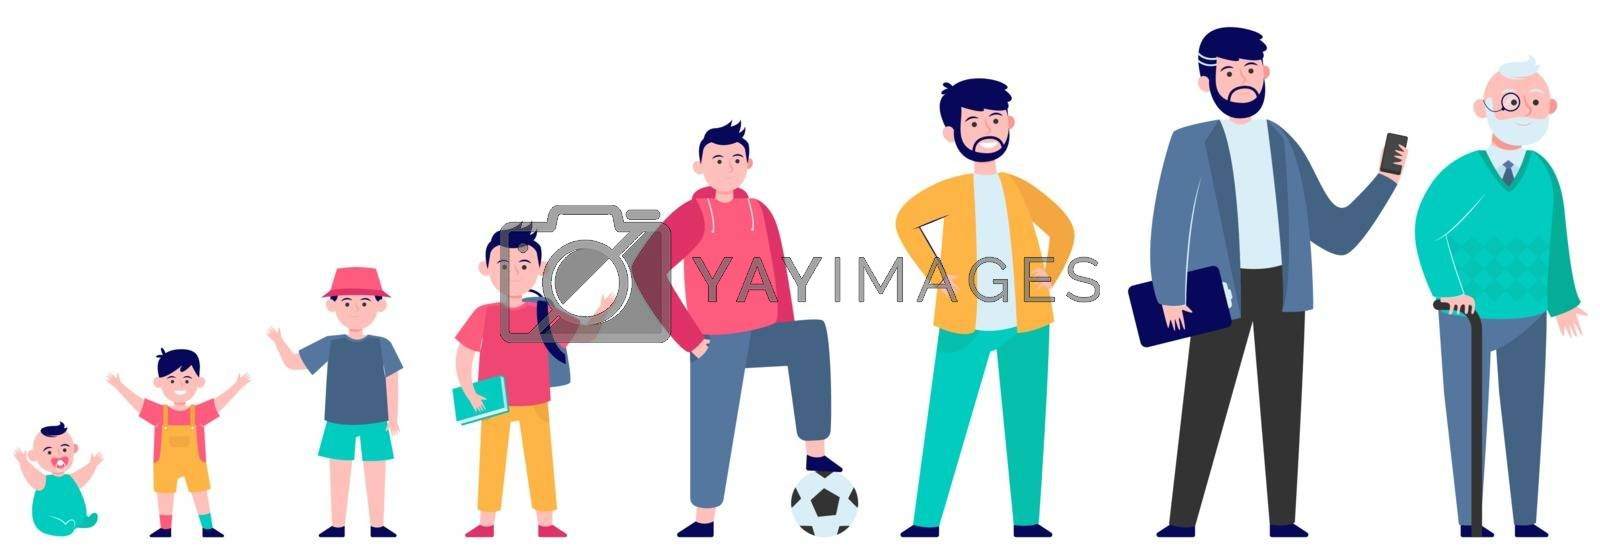 Cartoon man in different age flat vector illustration. Male character growth cycle from child to old person set. Generation and life evolution concept